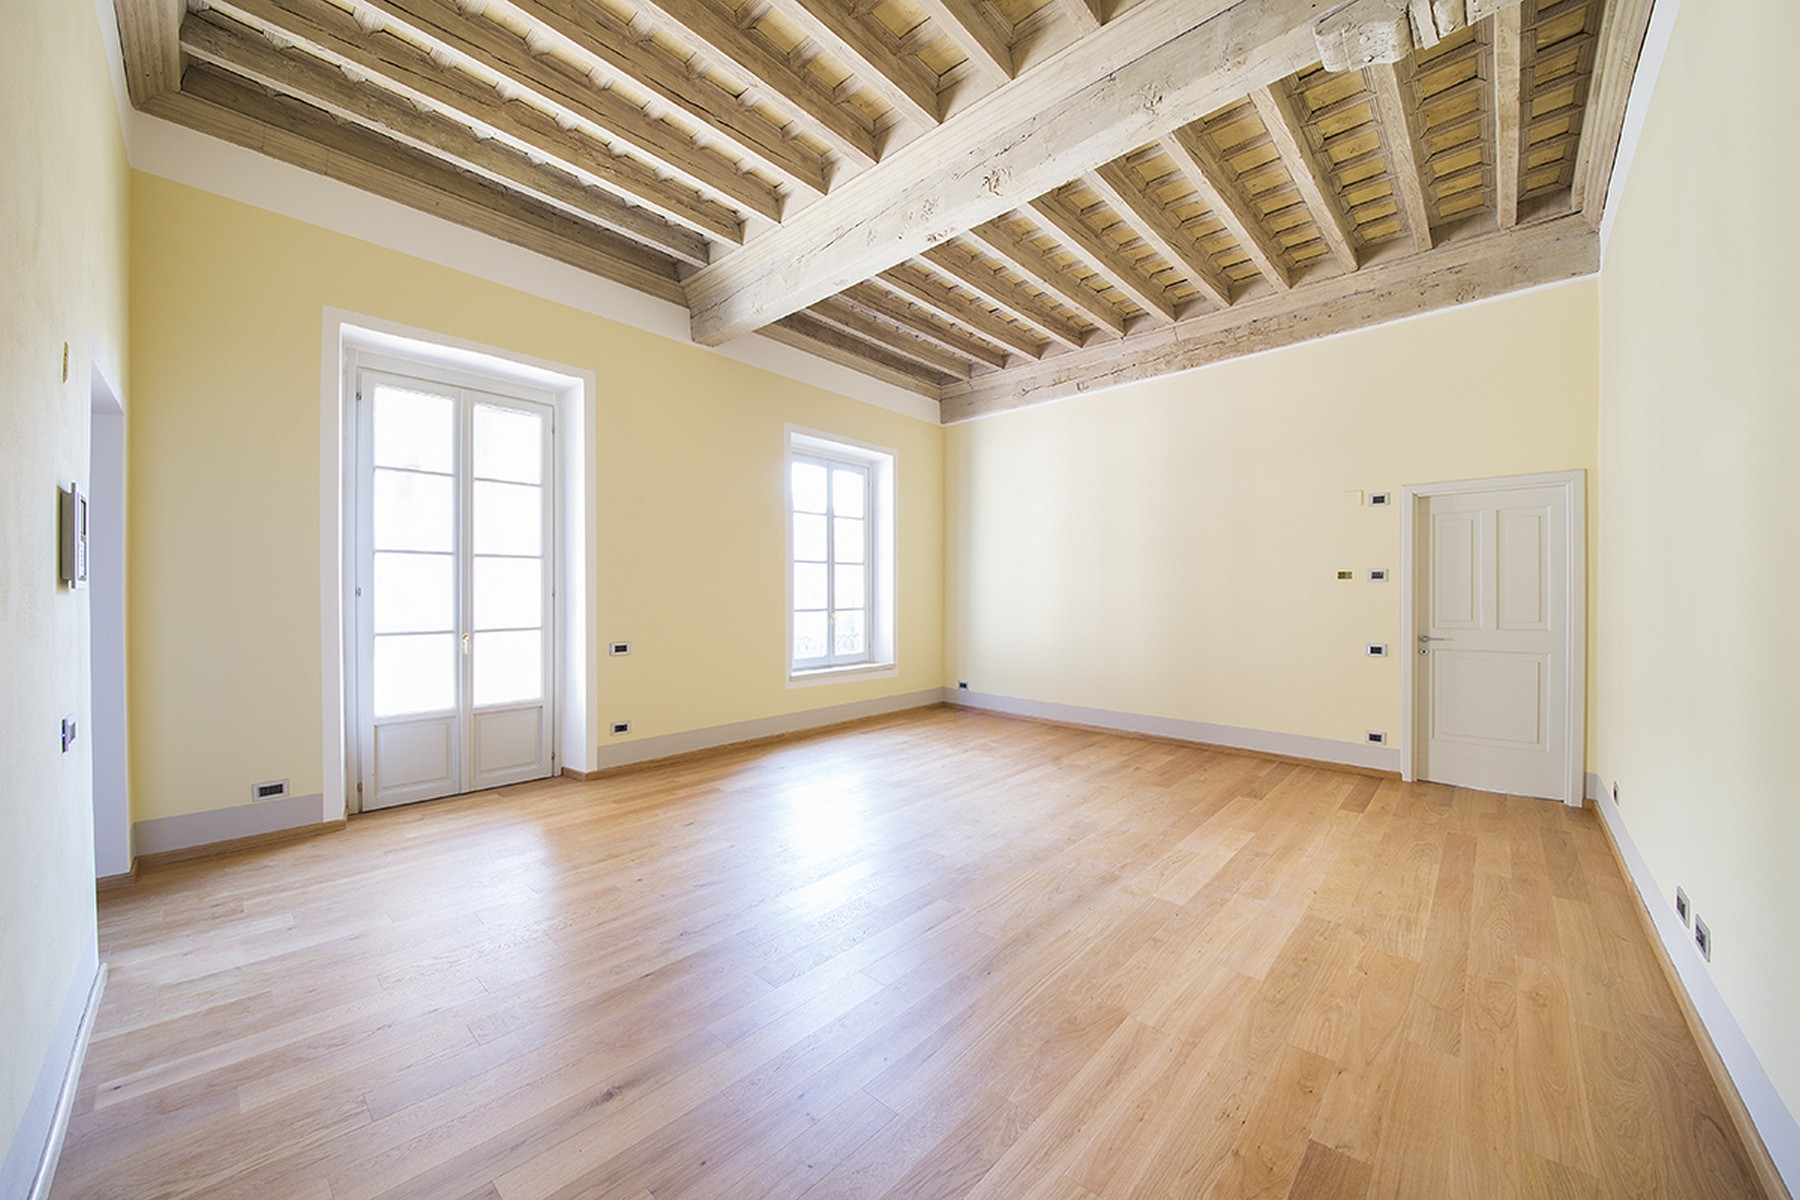 Additional photo for property listing at Newly built apartment in the historic center of Como Via Cinque Giornate Como, Como 22100 Italien